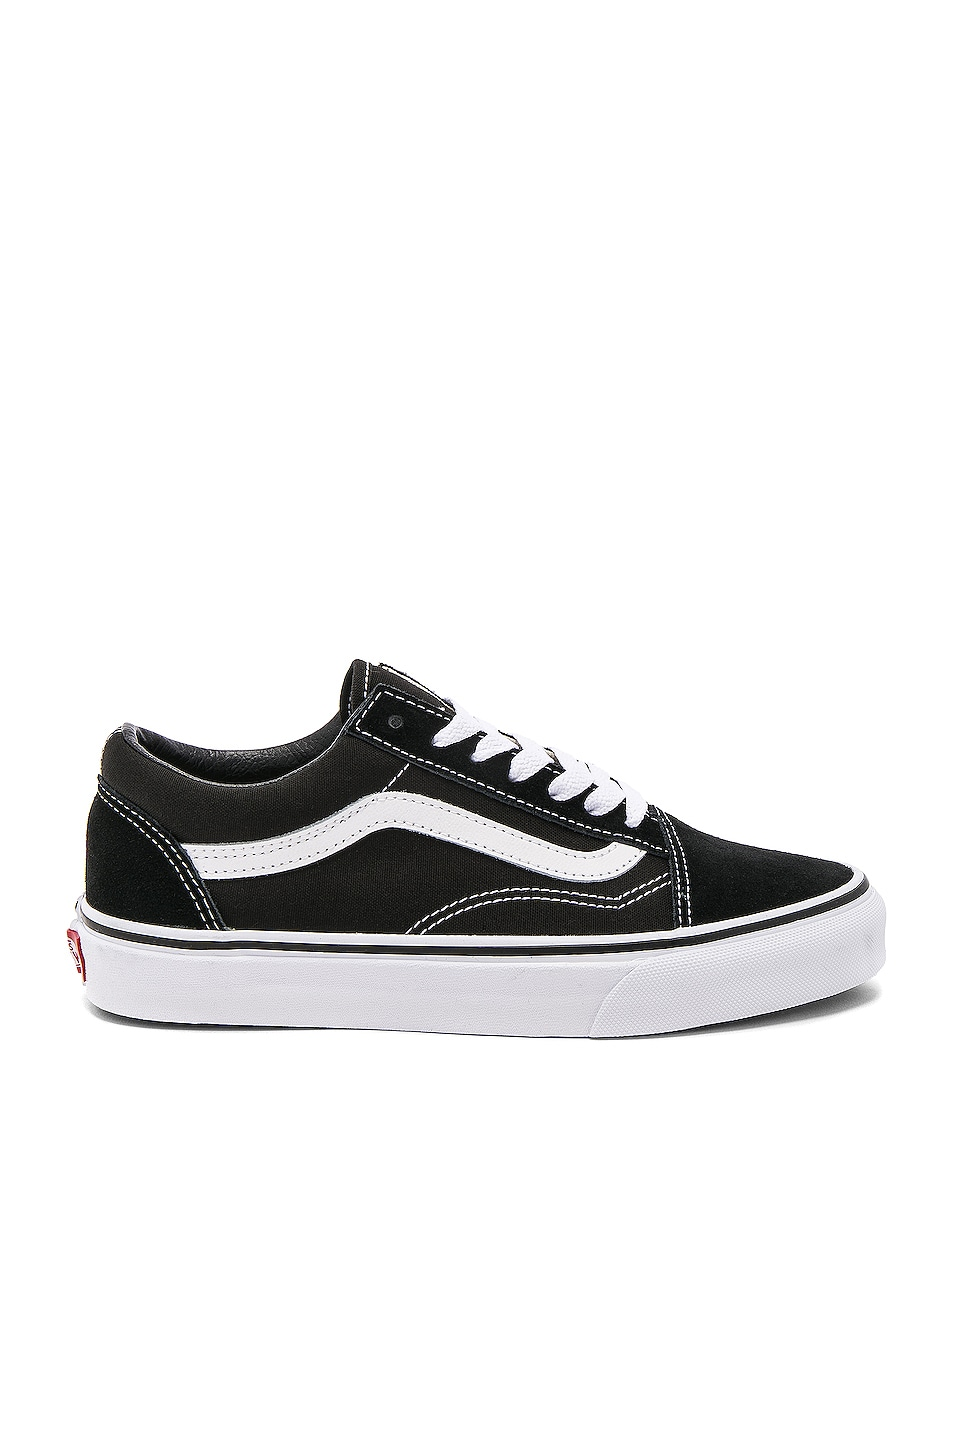 Vans Old Skool in Black